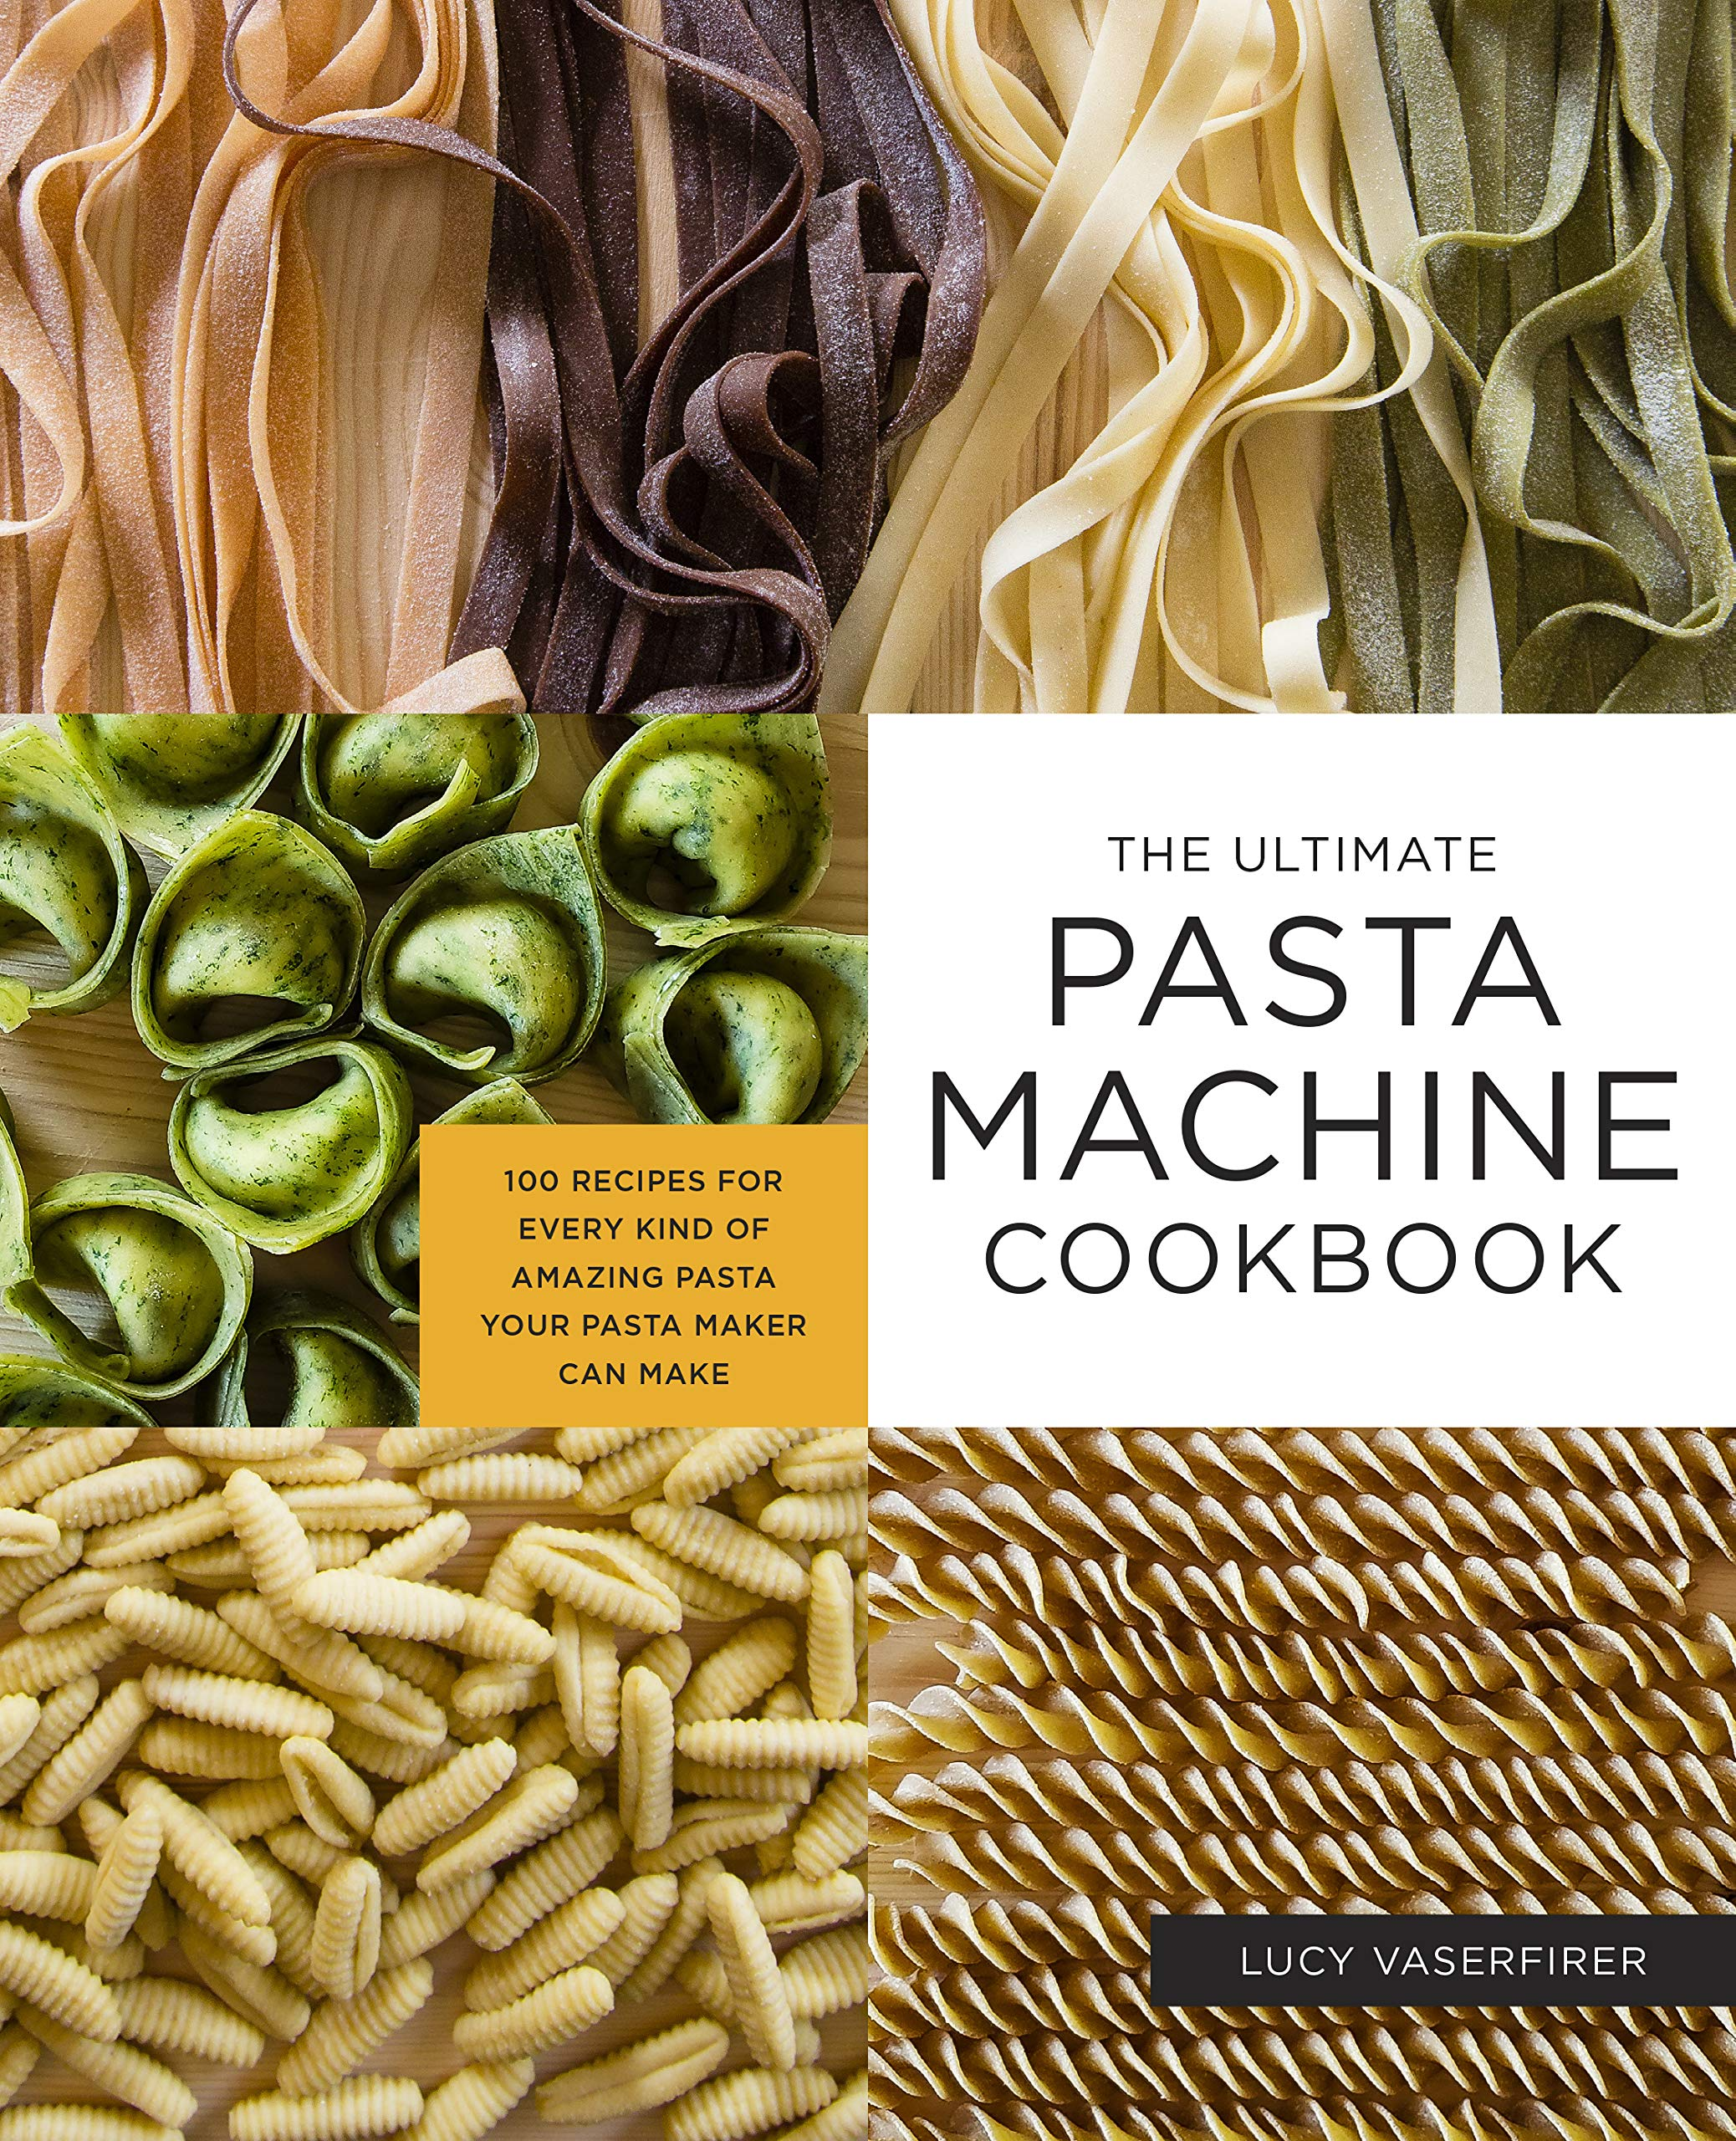 Image OfThe Ultimate Pasta Machine Cookbook: 100 Recipes For Every Kind Of Amazing Pasta Your Pasta Maker Can Make